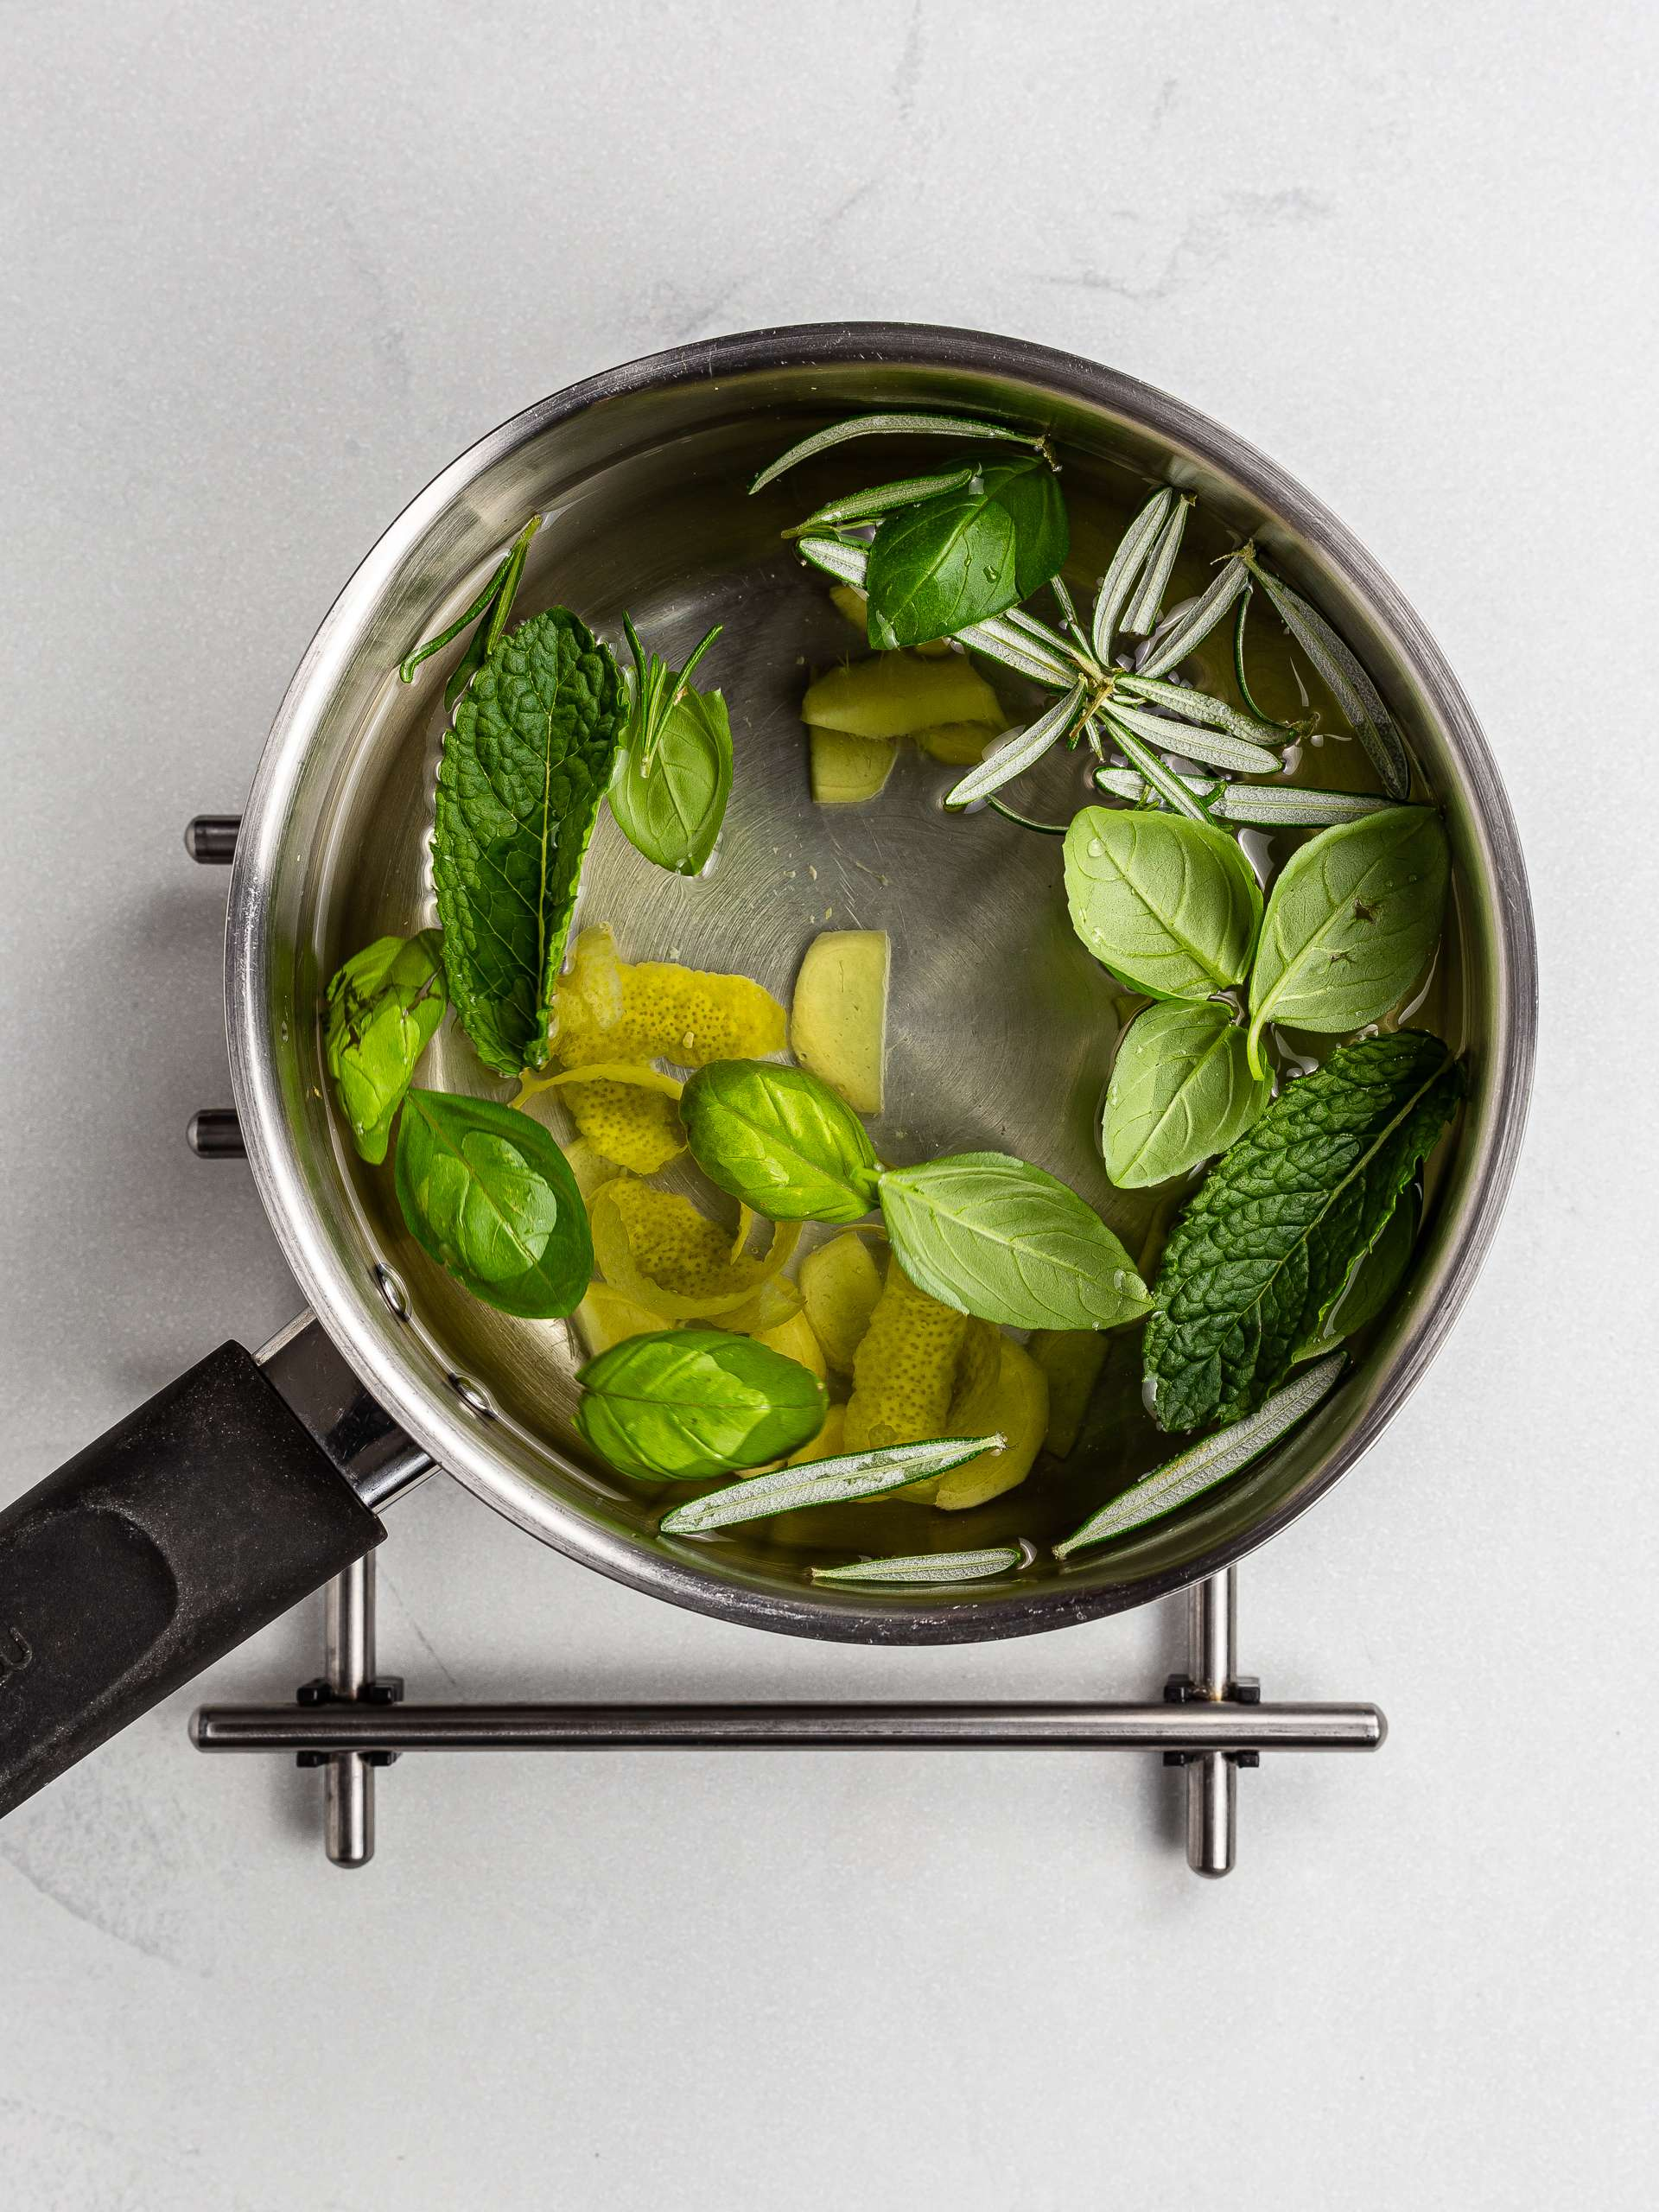 fresh herbs in a pot of water with ginger and lemon peel